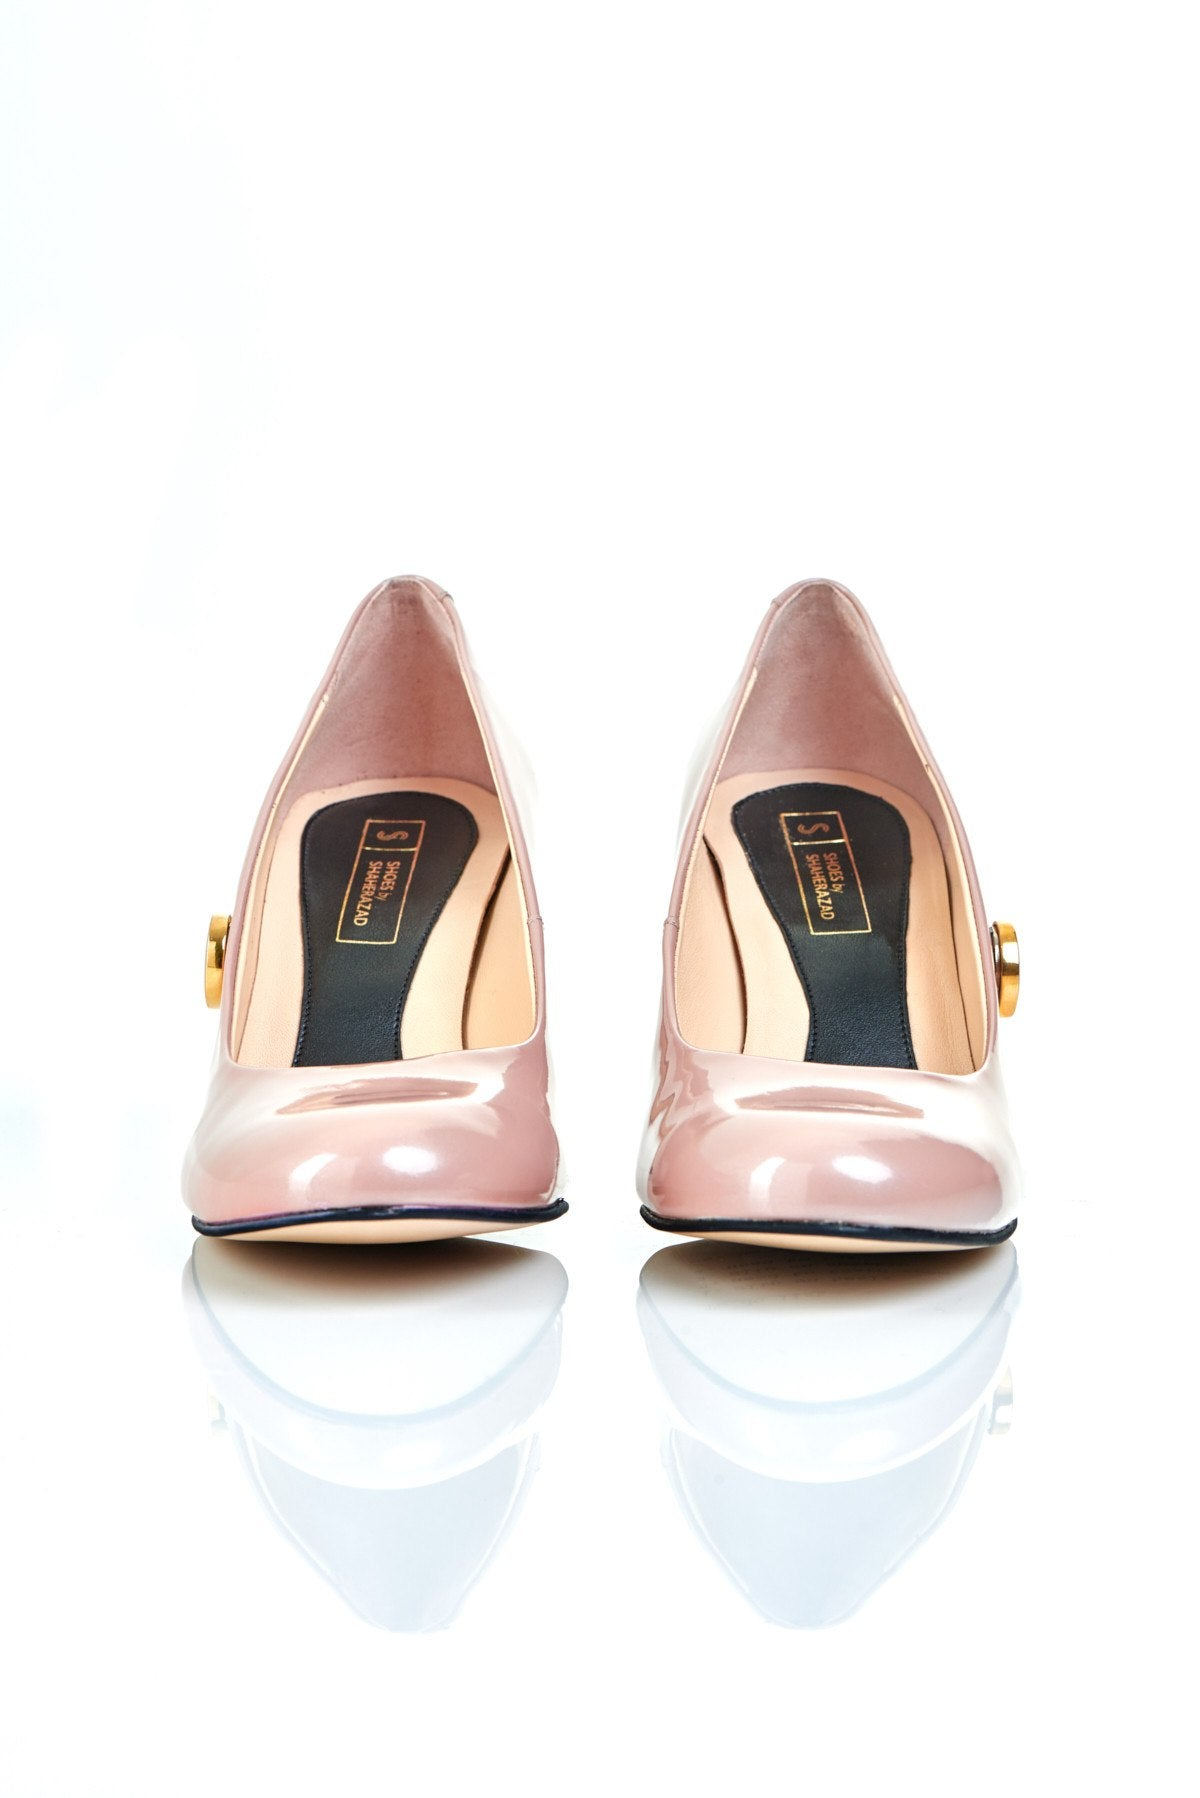 She's a Wildflower in Blush - Shoes by Shaherazad